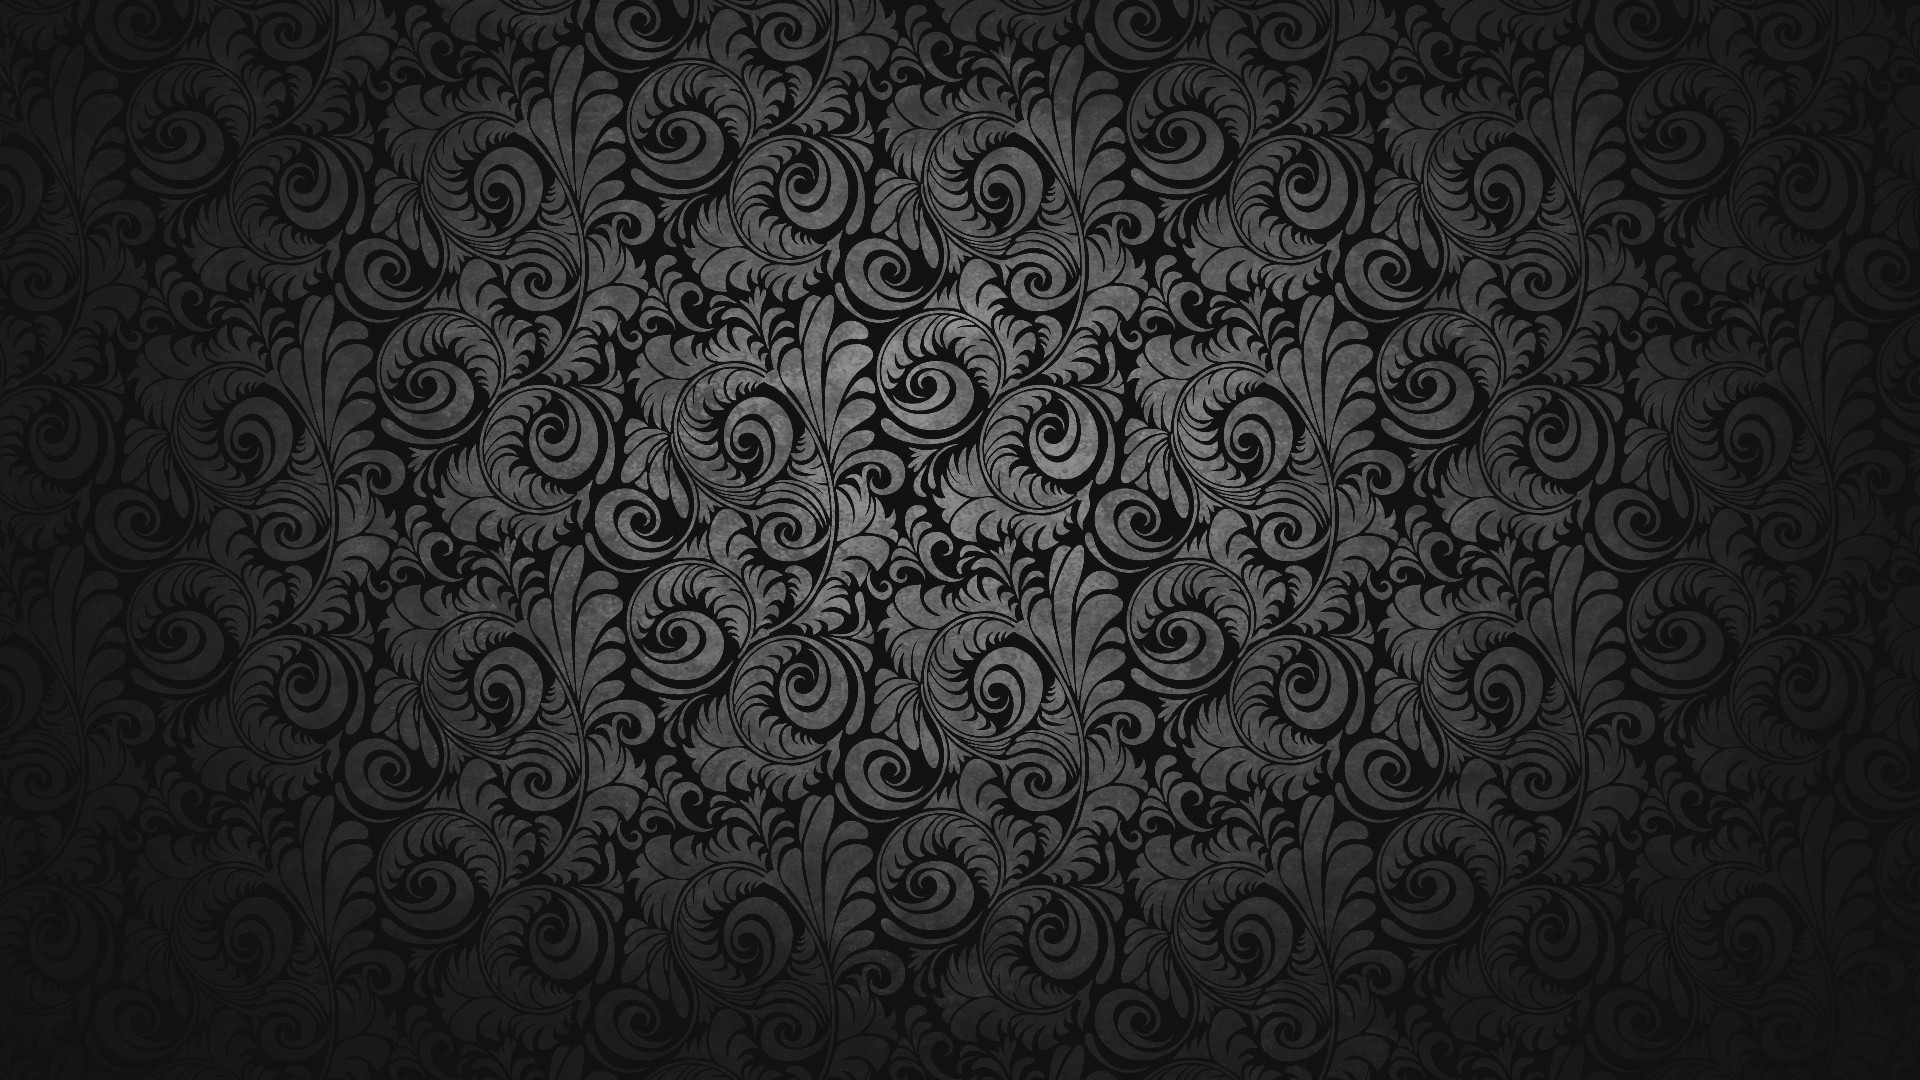 Dark Background 1920x1080 HD Image Abstract 3D 1920x1080